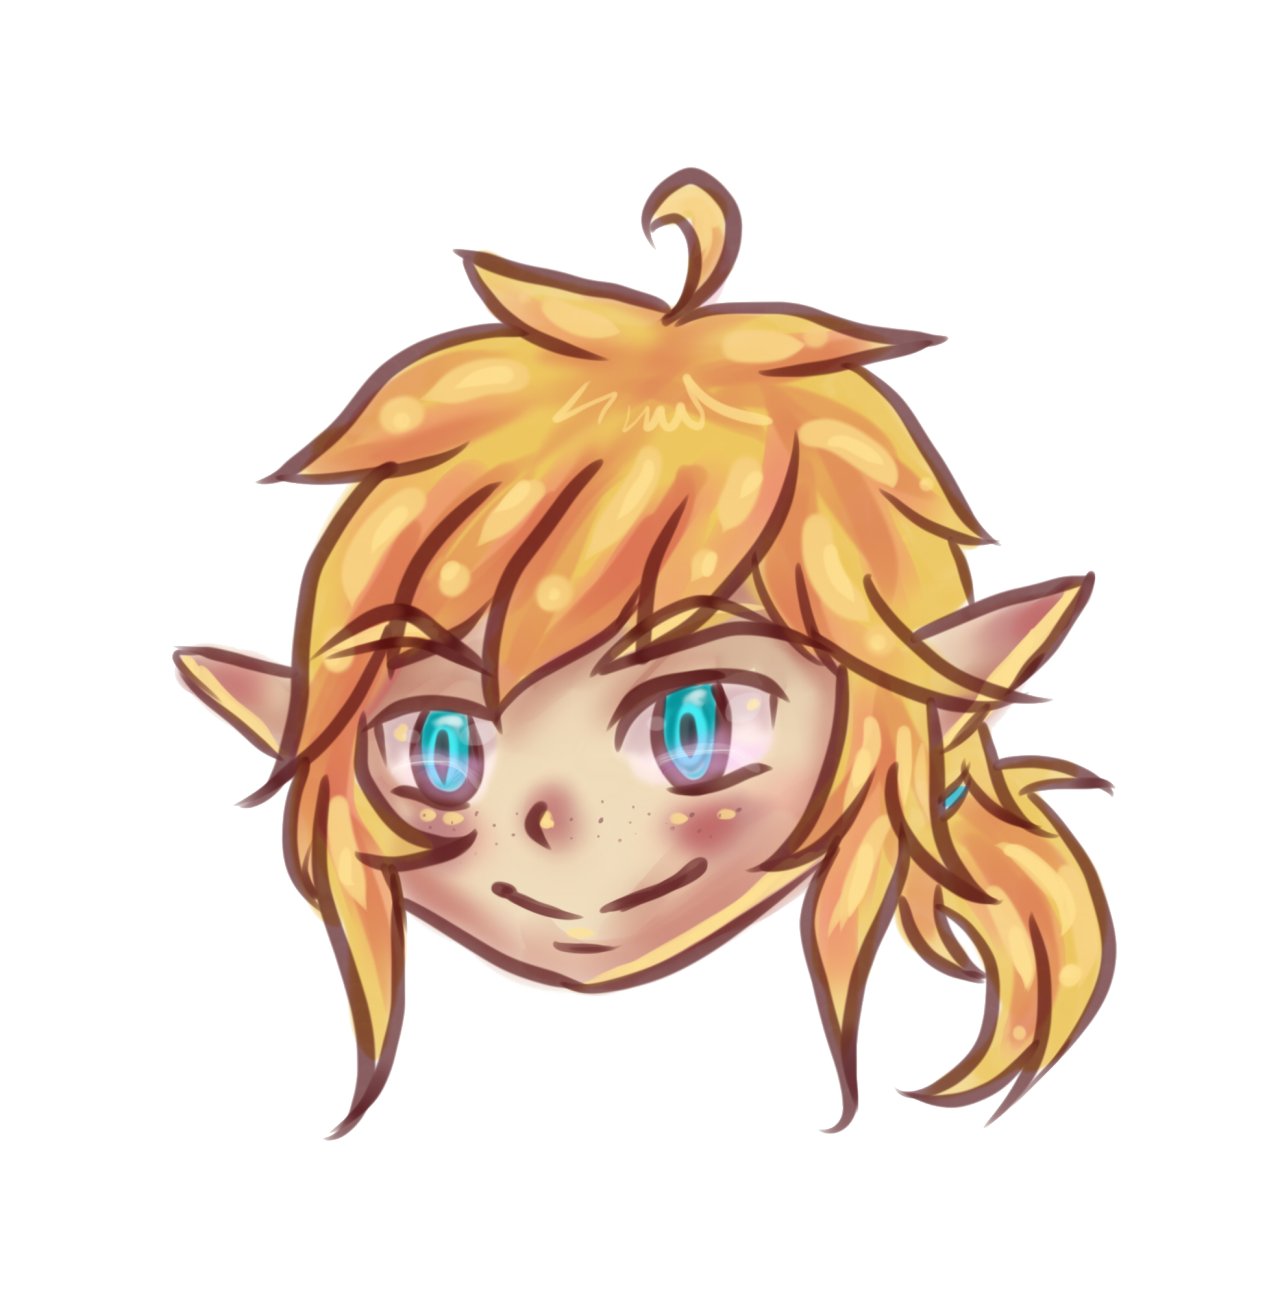 Drawing link expression. Carrots for funkynary chibi